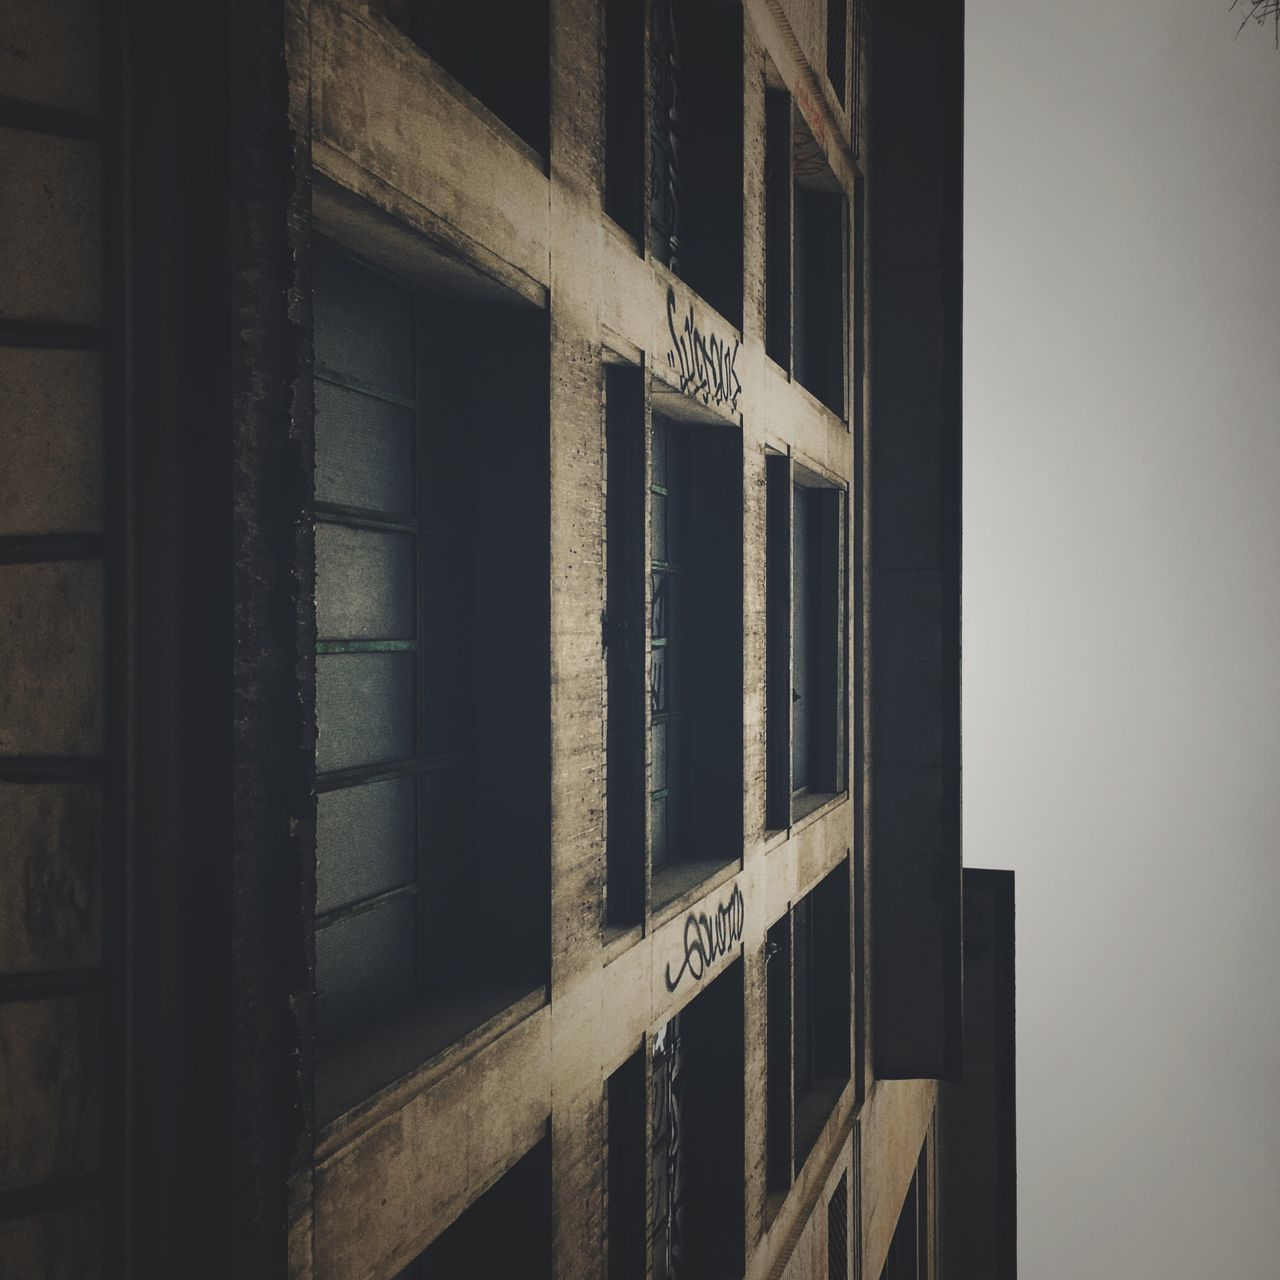 Built Structure No People Text Architecture Communication Day Indoors  Exit Sign Architectural Style Paris Modern Art Abandoned Building Industry Outdoors Building Exterior Architecture Windows